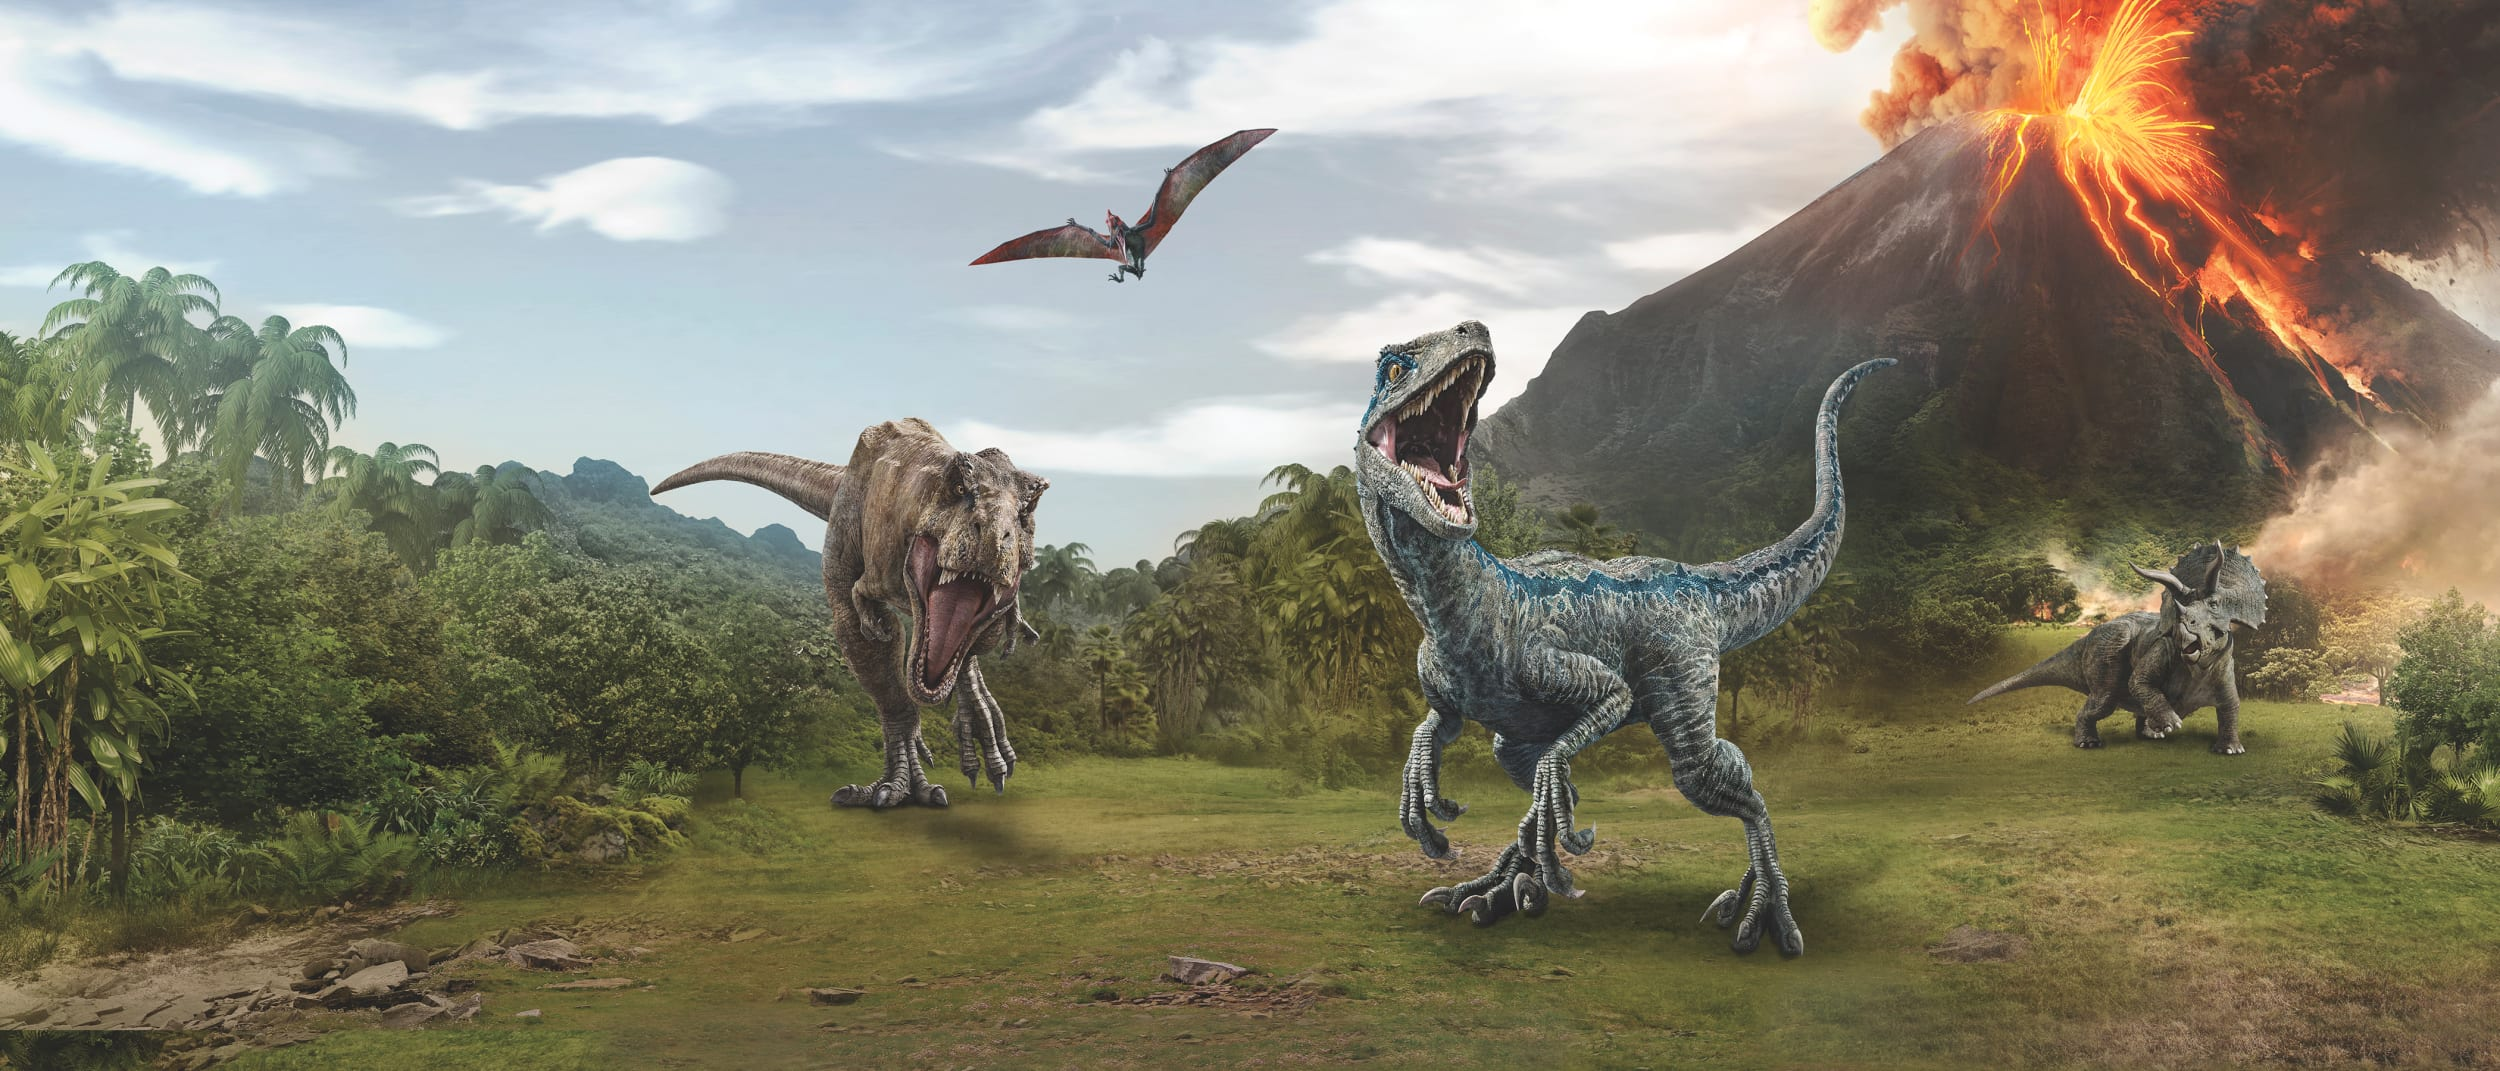 School holidays: Jurassic World Craft Village